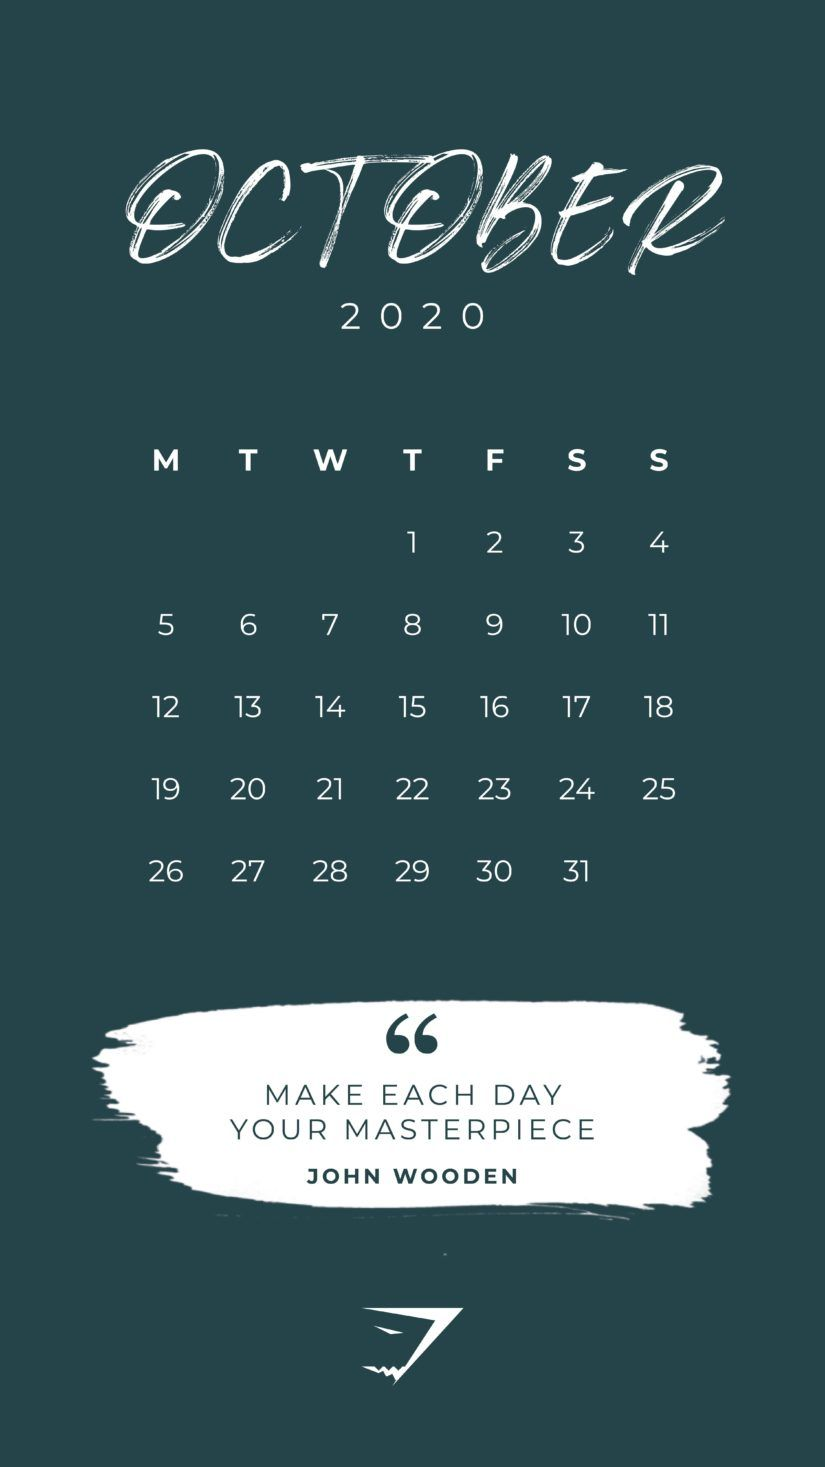 50 Free Printable October 2020 Calendars With Holidays Onedesblog In 2020 Calendar Wallpaper Wallpaper Iphone Quotes Calendar Quotes